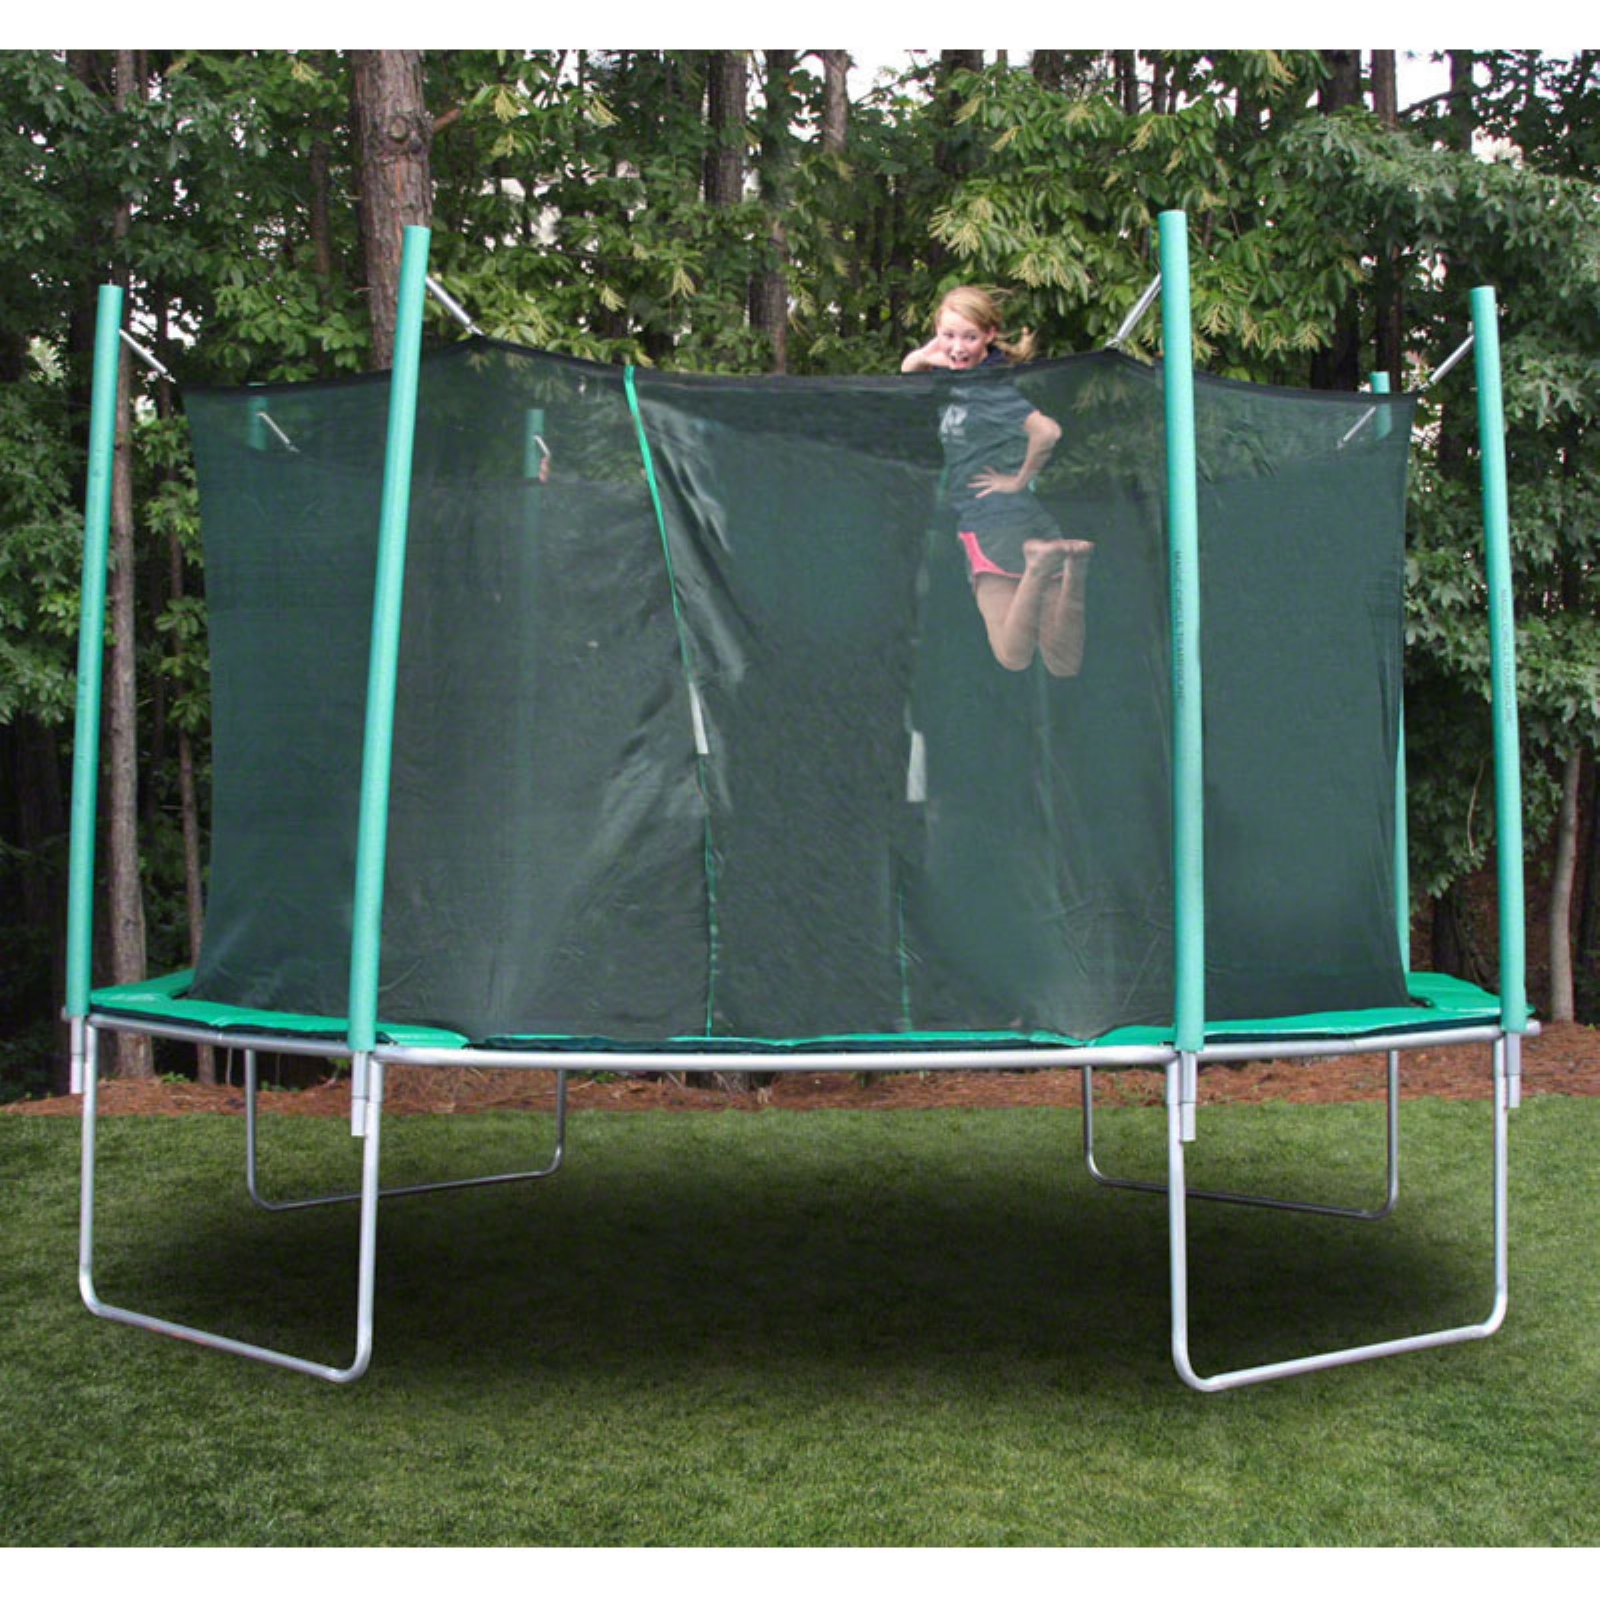 SportsTramp Extreme 16 ft. Octagon Trampoline with Detachable Cage